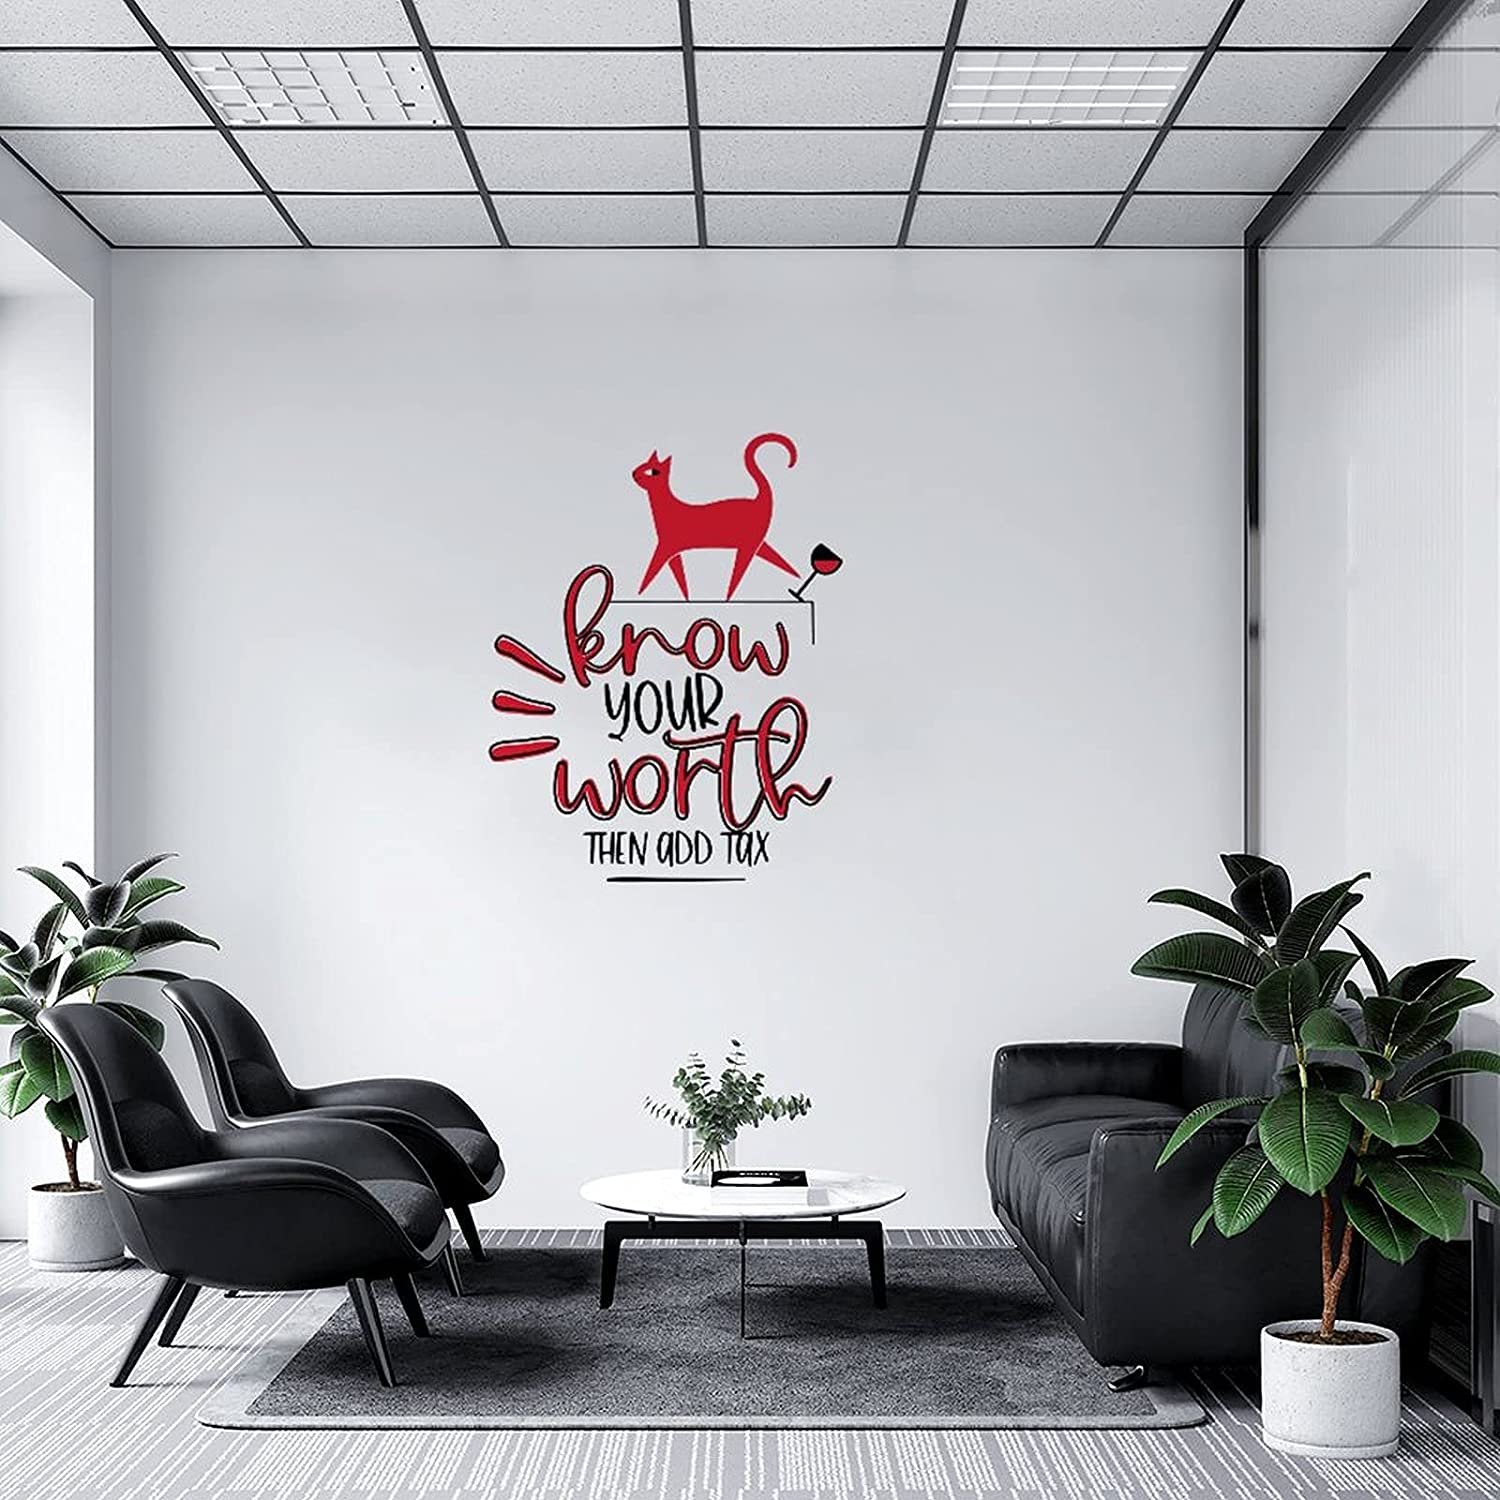 Wall Decal Know Your Max 64% OFF Worth Then Classroom Very popular Kitch Tax Add Nursery